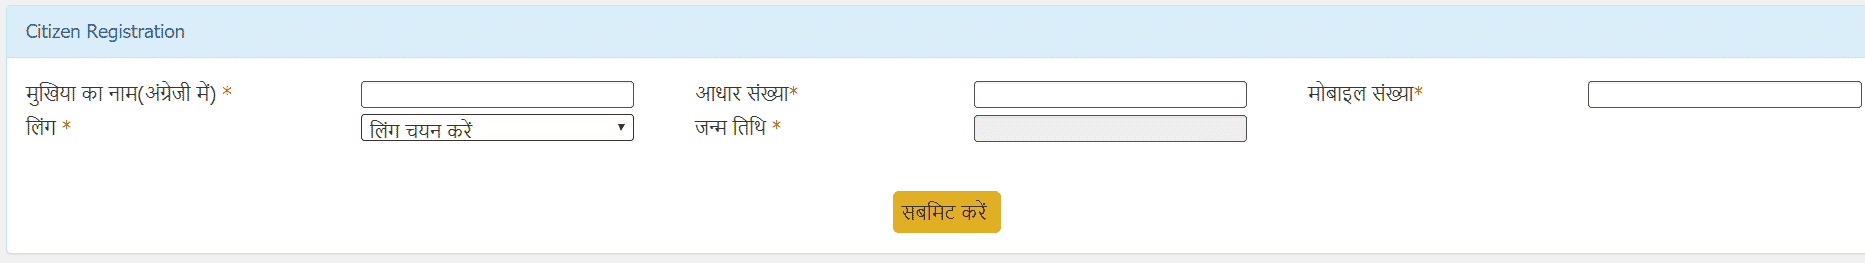 Rajasthan Jan Aadhar Card Online Registration Form